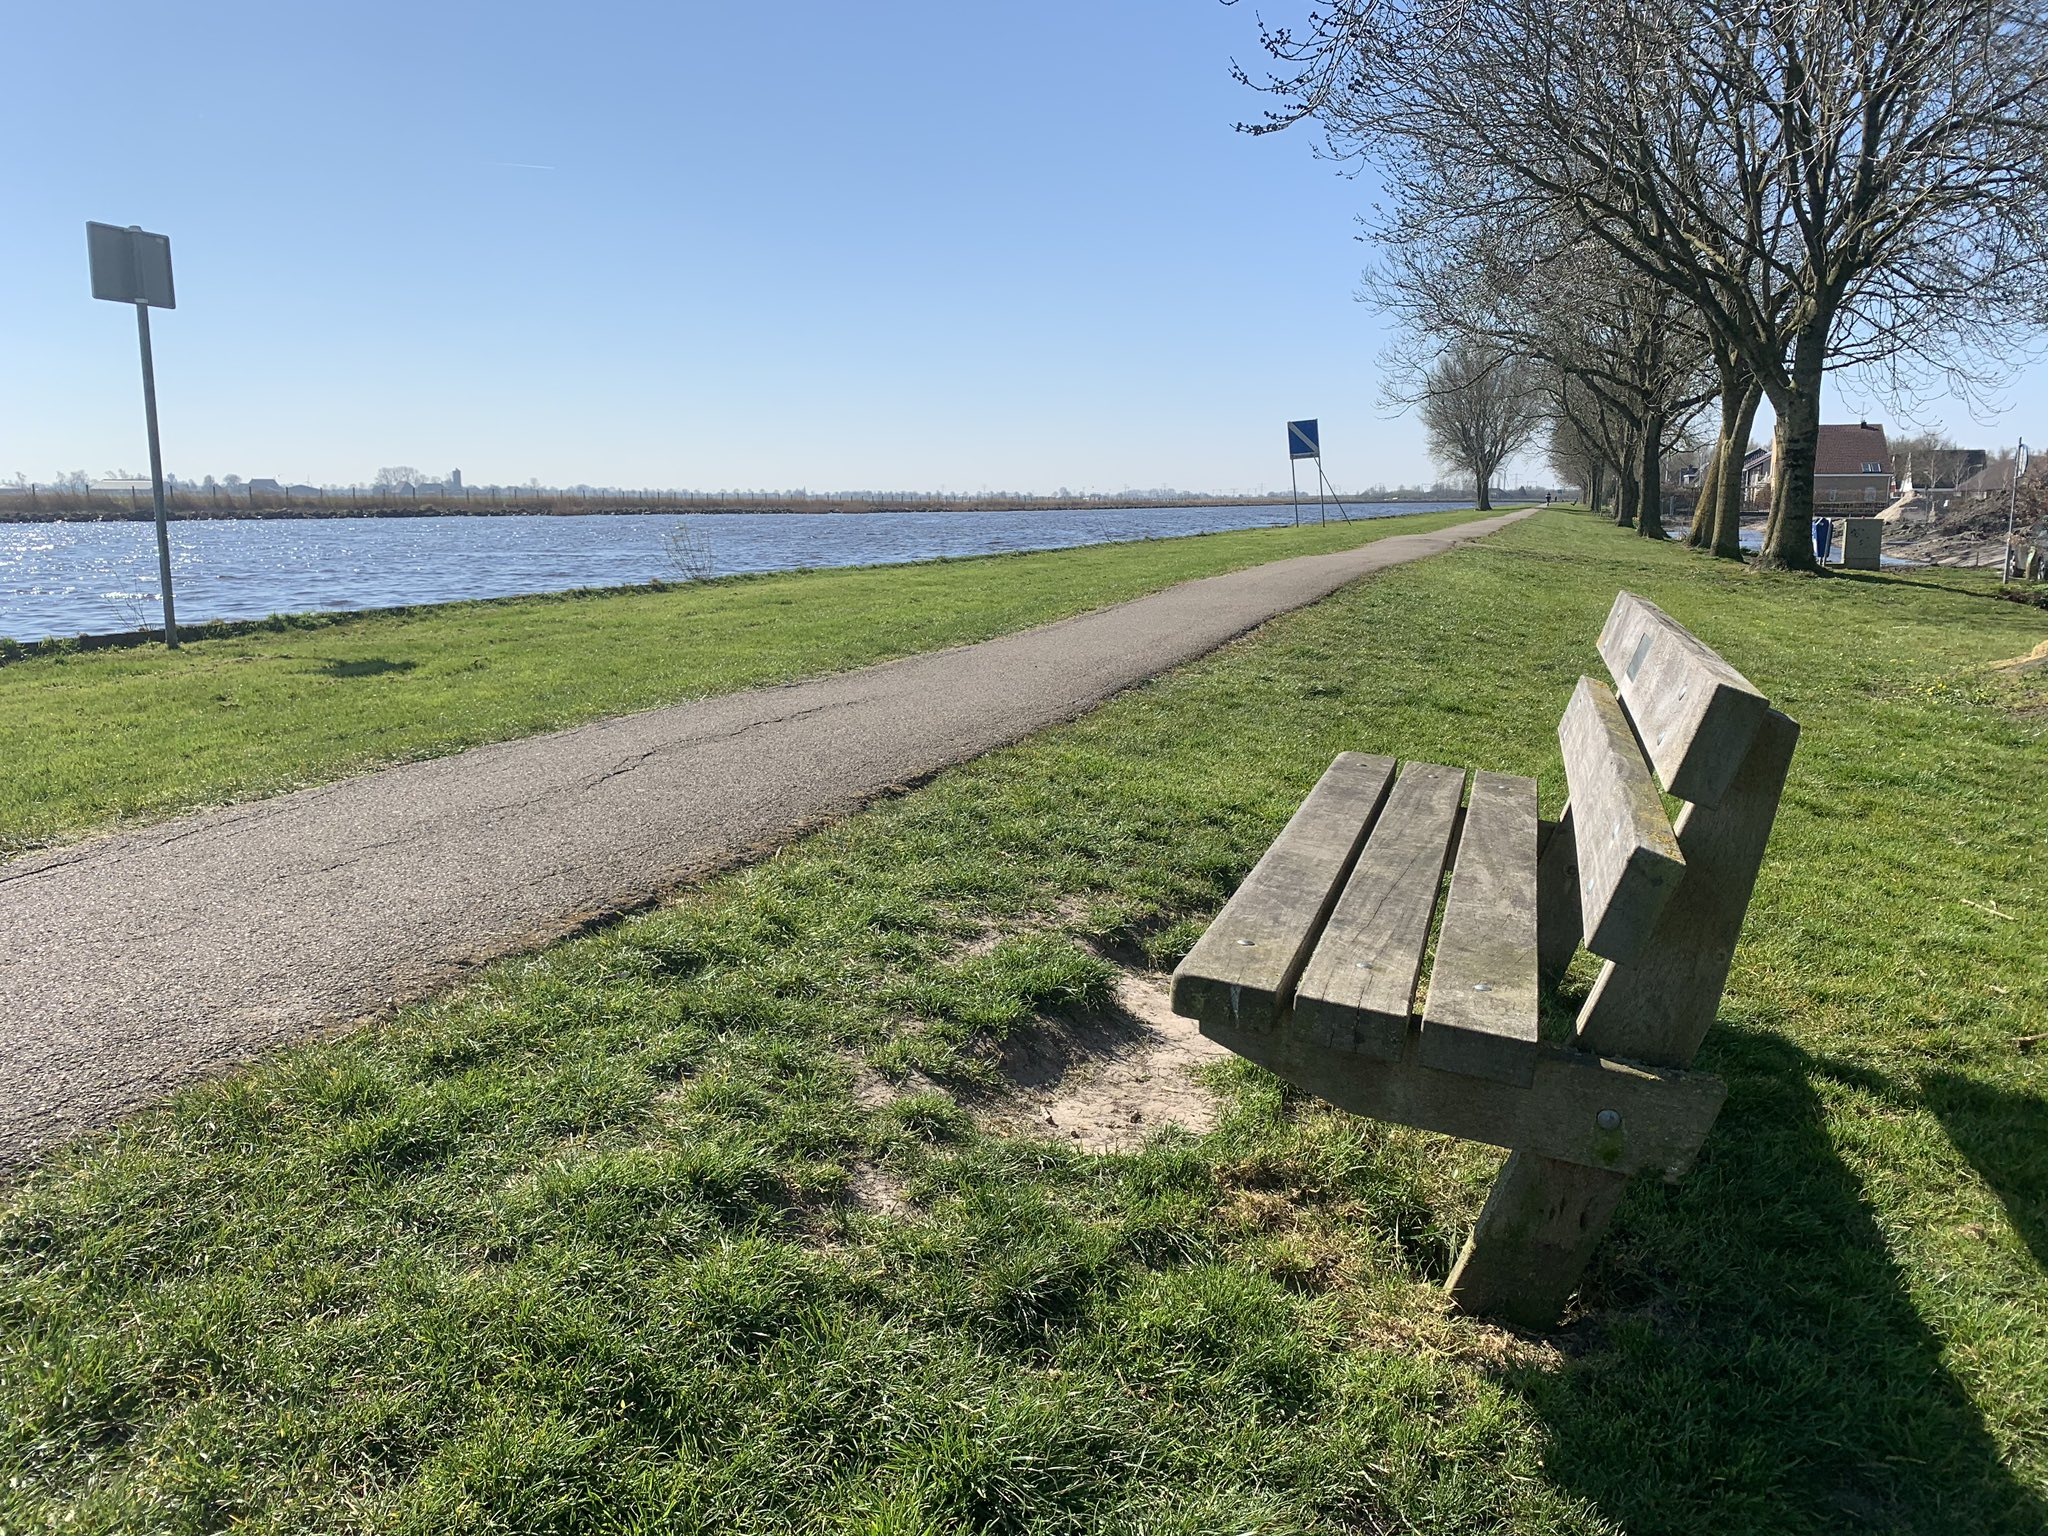 rt-peterboomsma-voor-wandelbankjes-aan-de-wandel-in-grou-https-t-co-3jspg3q4rh